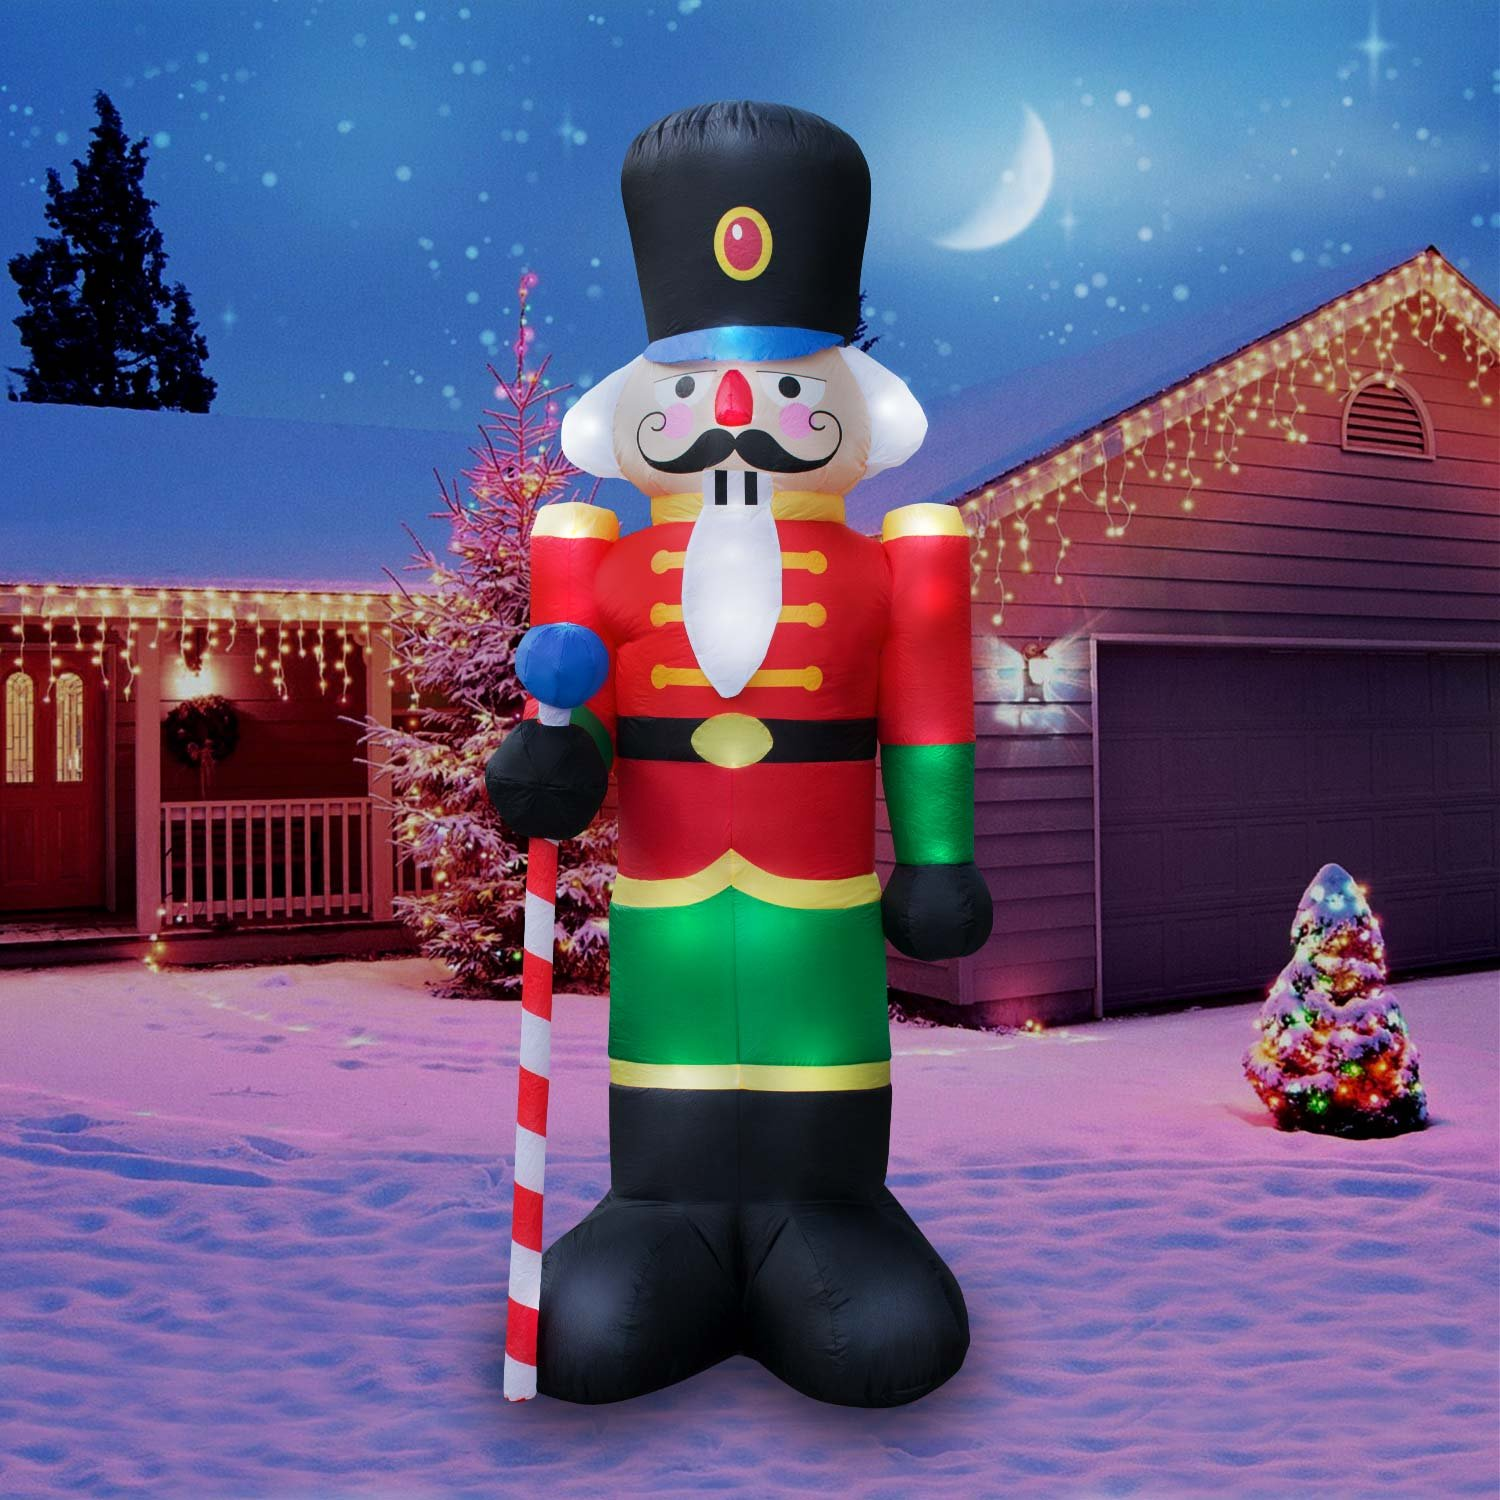 nutcracker soldier decorations outdoor christmas inflatables - Christmas Soldier Decorations